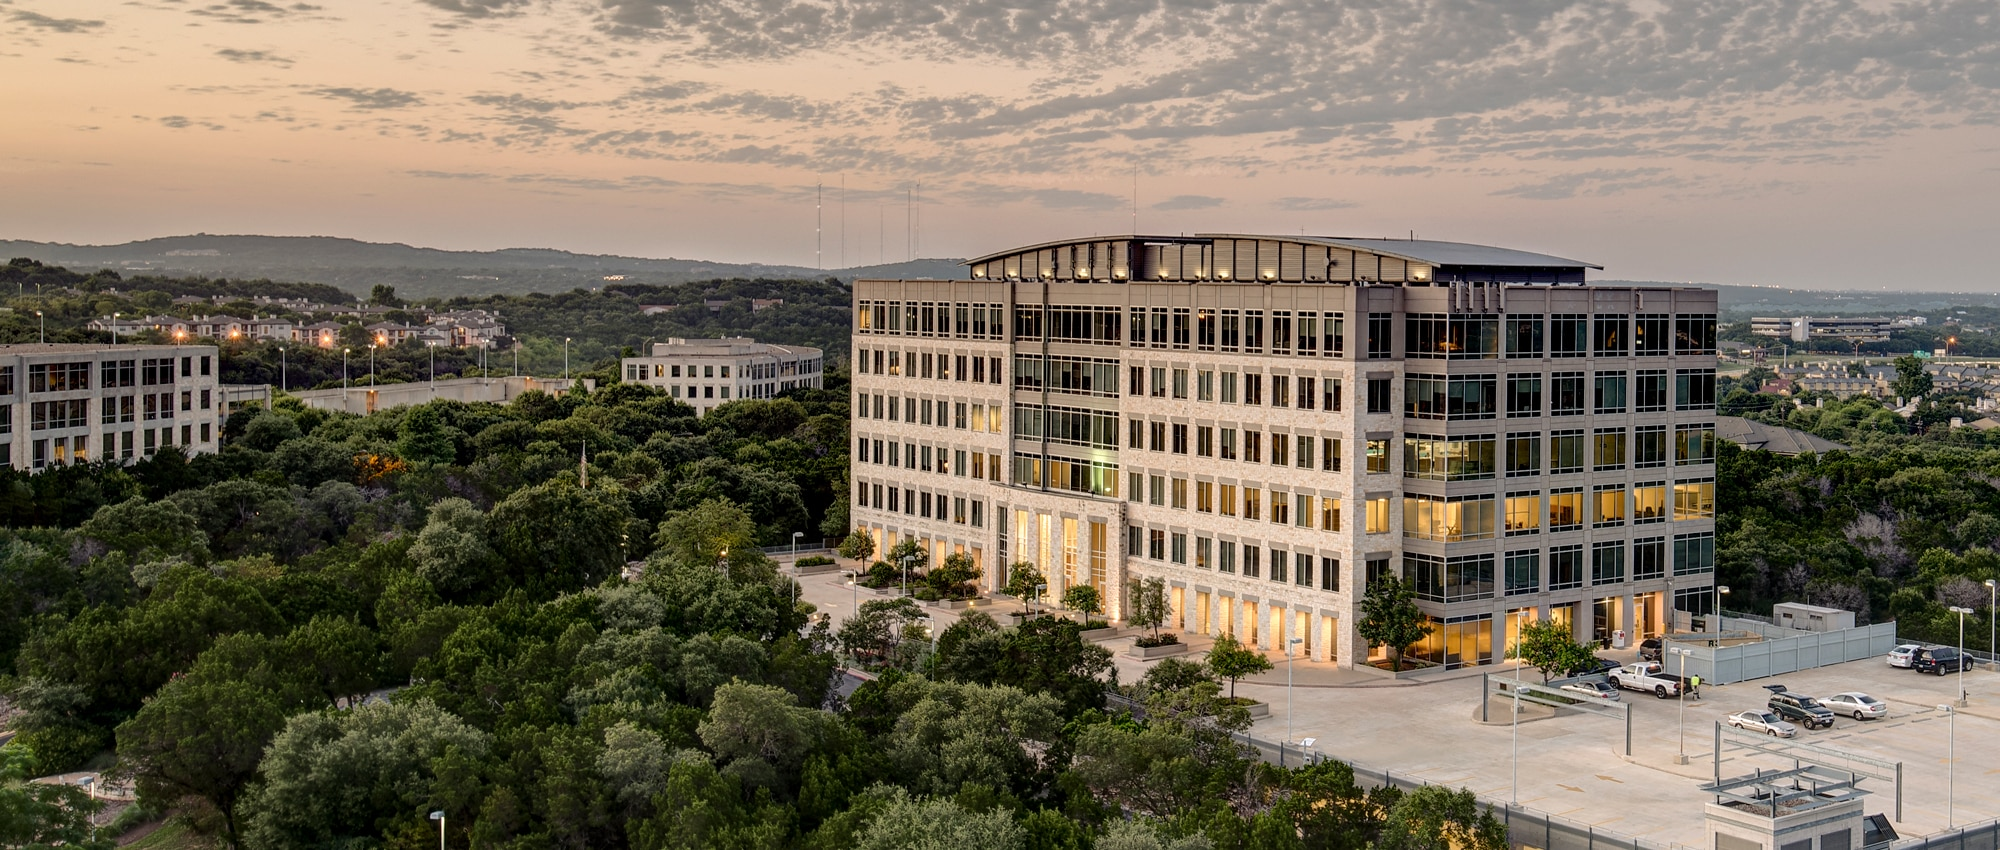 The Terrace Office Campus in Southwest Austin, Texas